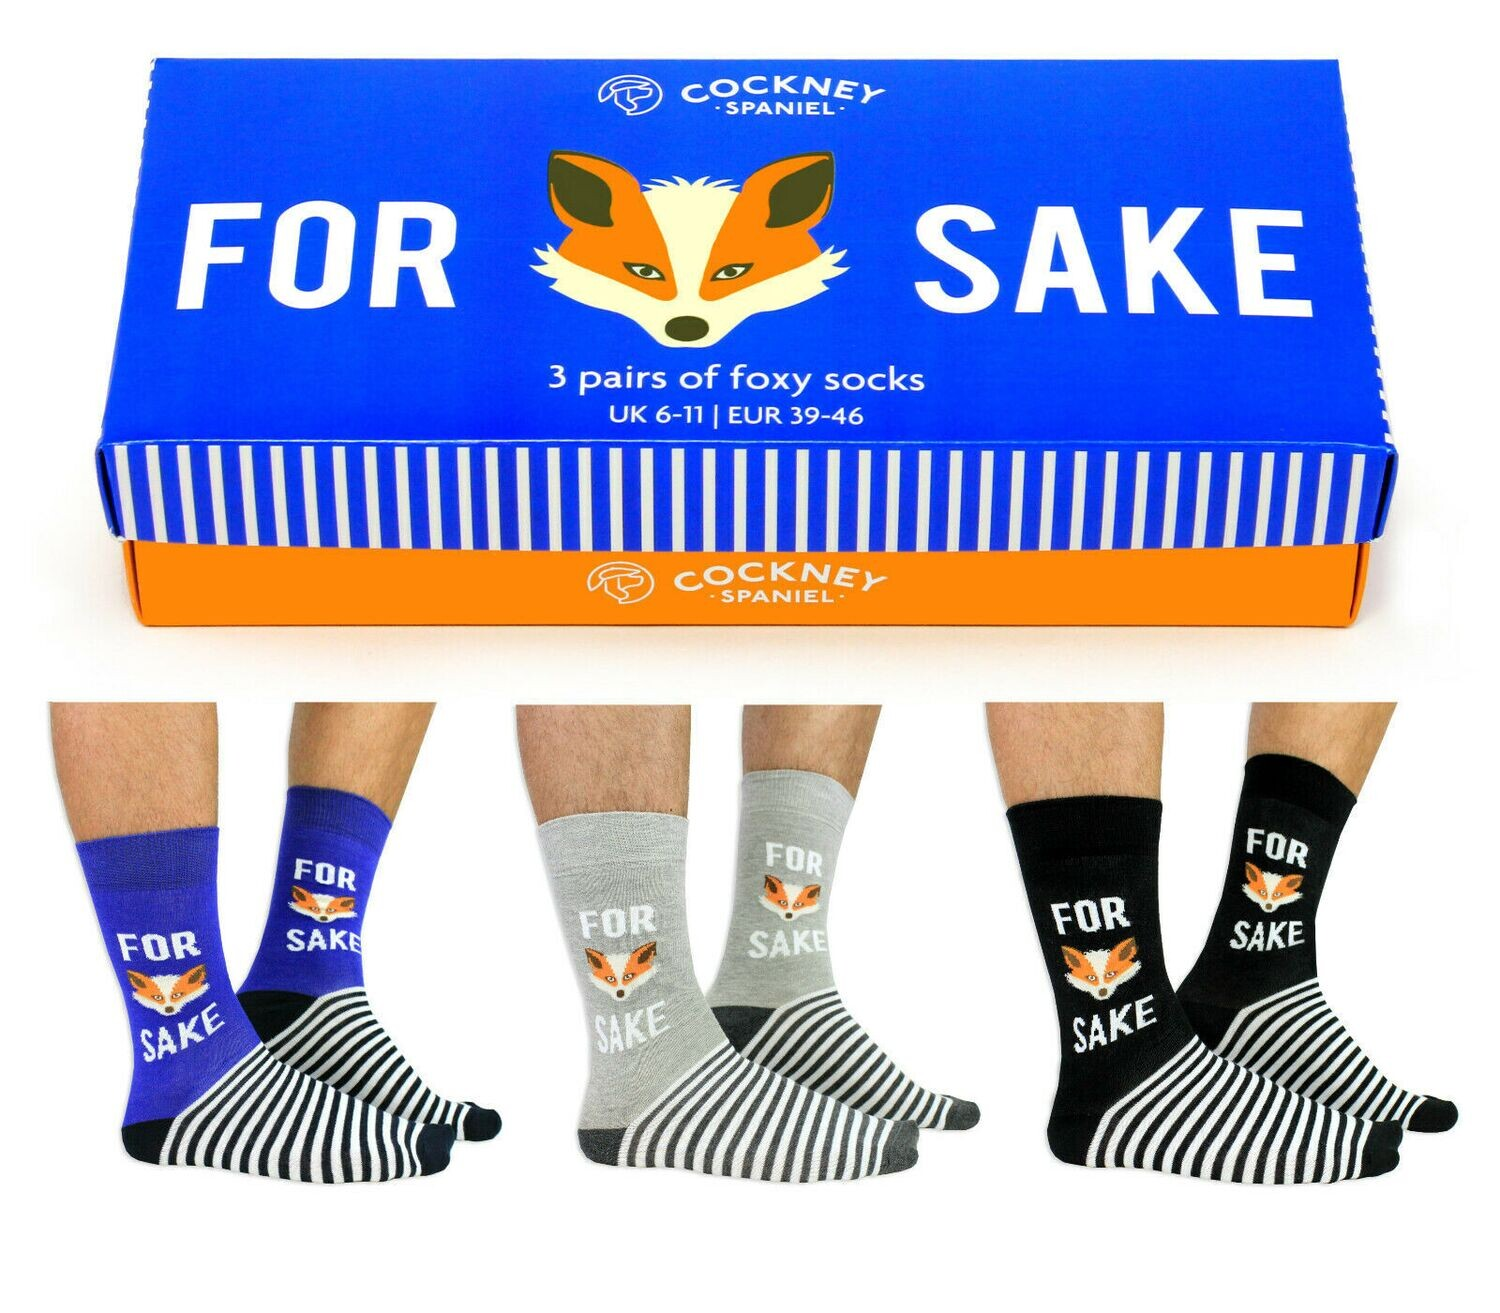 For Fox Sake 3 Pairs Of Mens Foxy Socks Gift Boxed by Cockney Spaniel 6-11